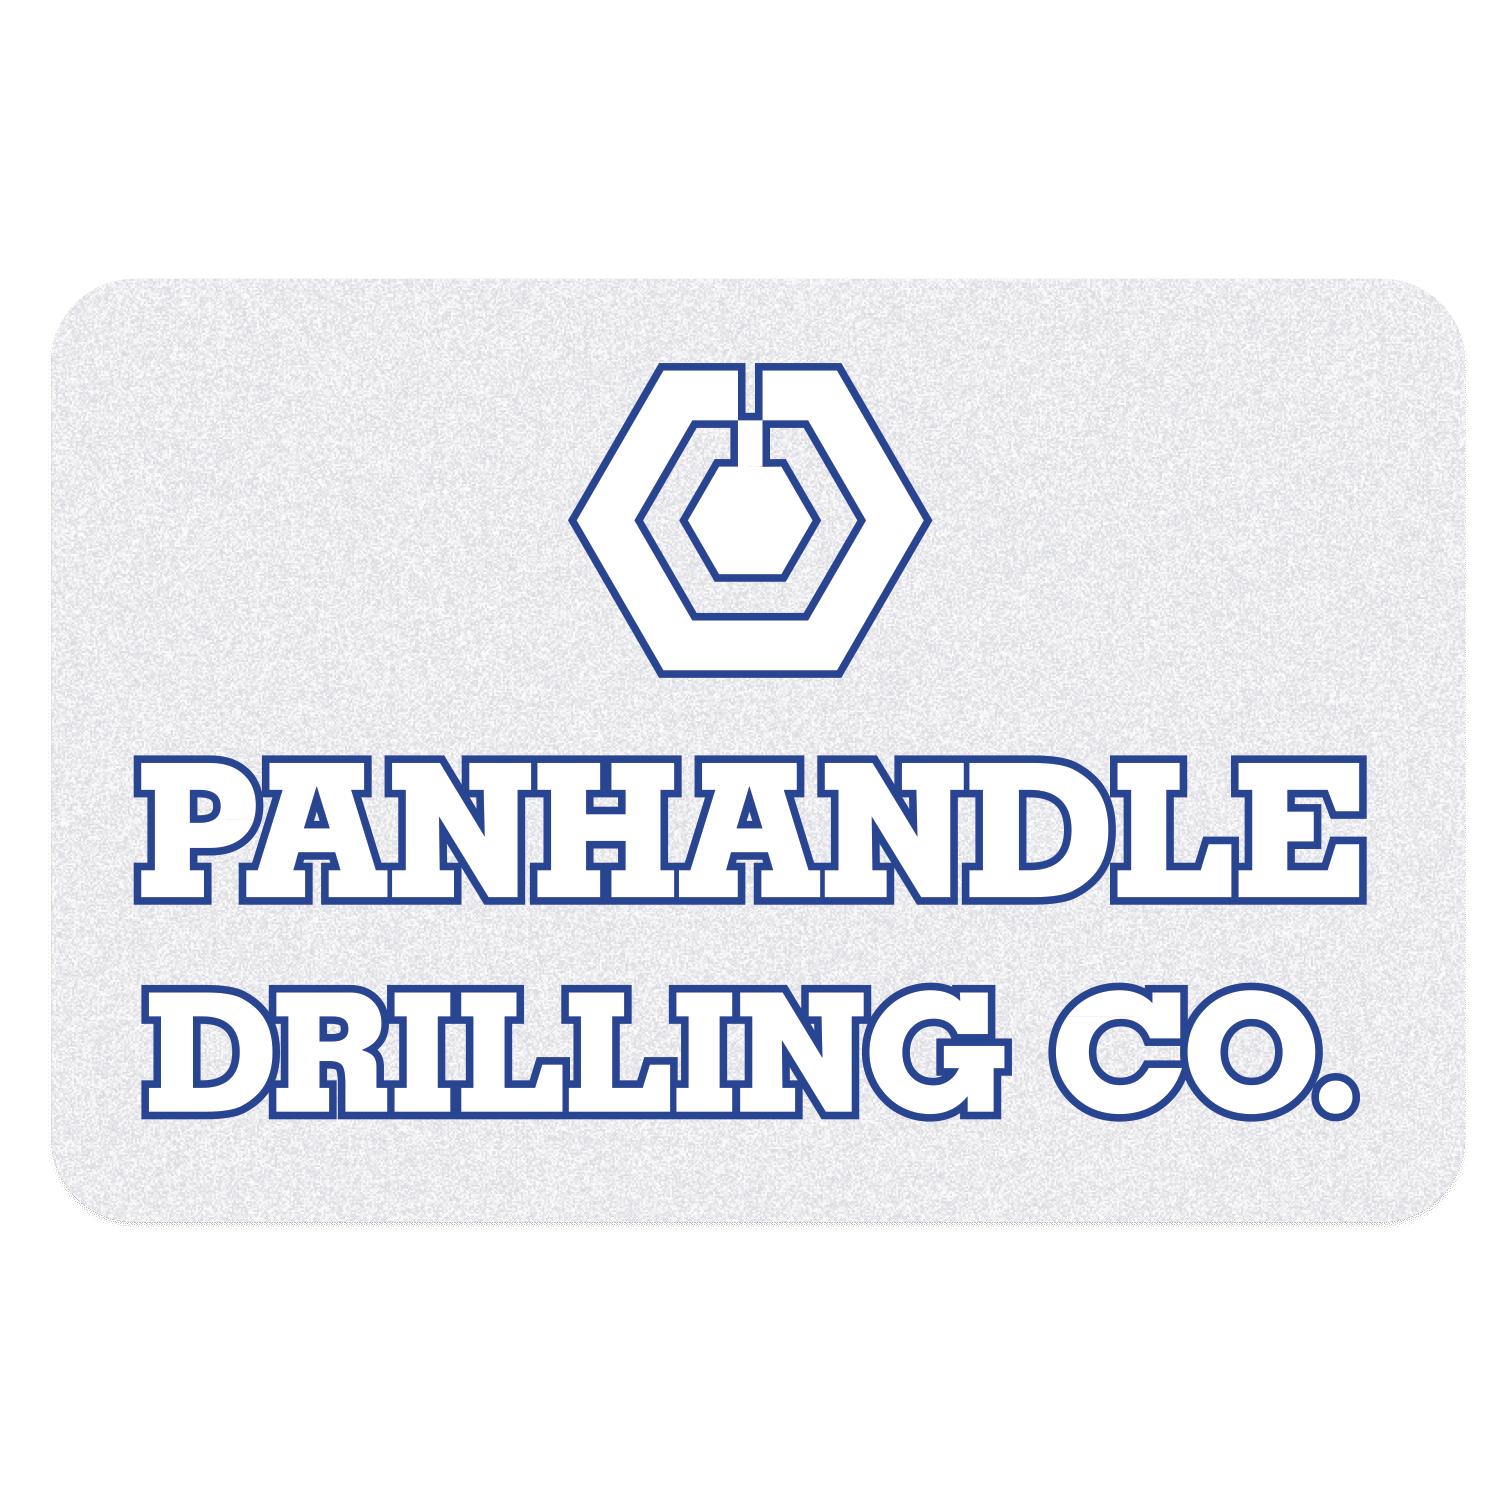 https://www.sswprinting.com/images/products_gallery_images/13304_Panhandle-Drilling_hi-res.png